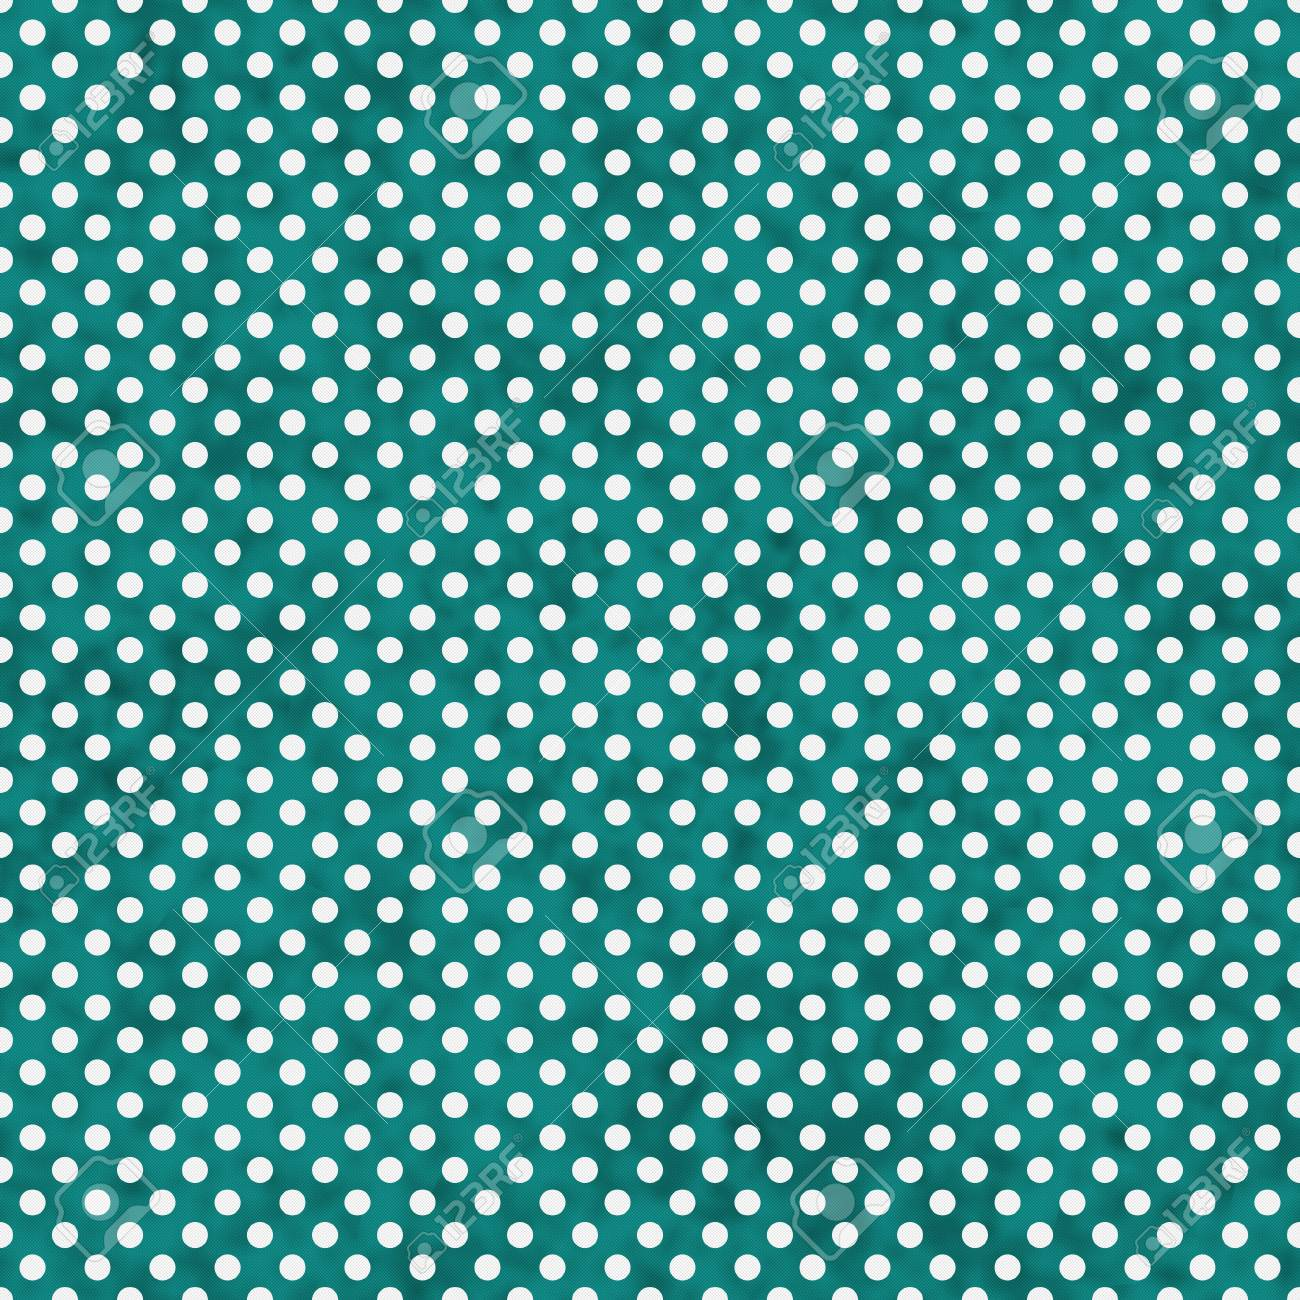 Teal 8x10 FT Photo Backdrops,Retro Style Pattern with Polka Dots Soft High Seas Colored Pale Blue Spots Blots Background for Photography Kids Adult Photo Booth Video Shoot Vinyl Studio Props